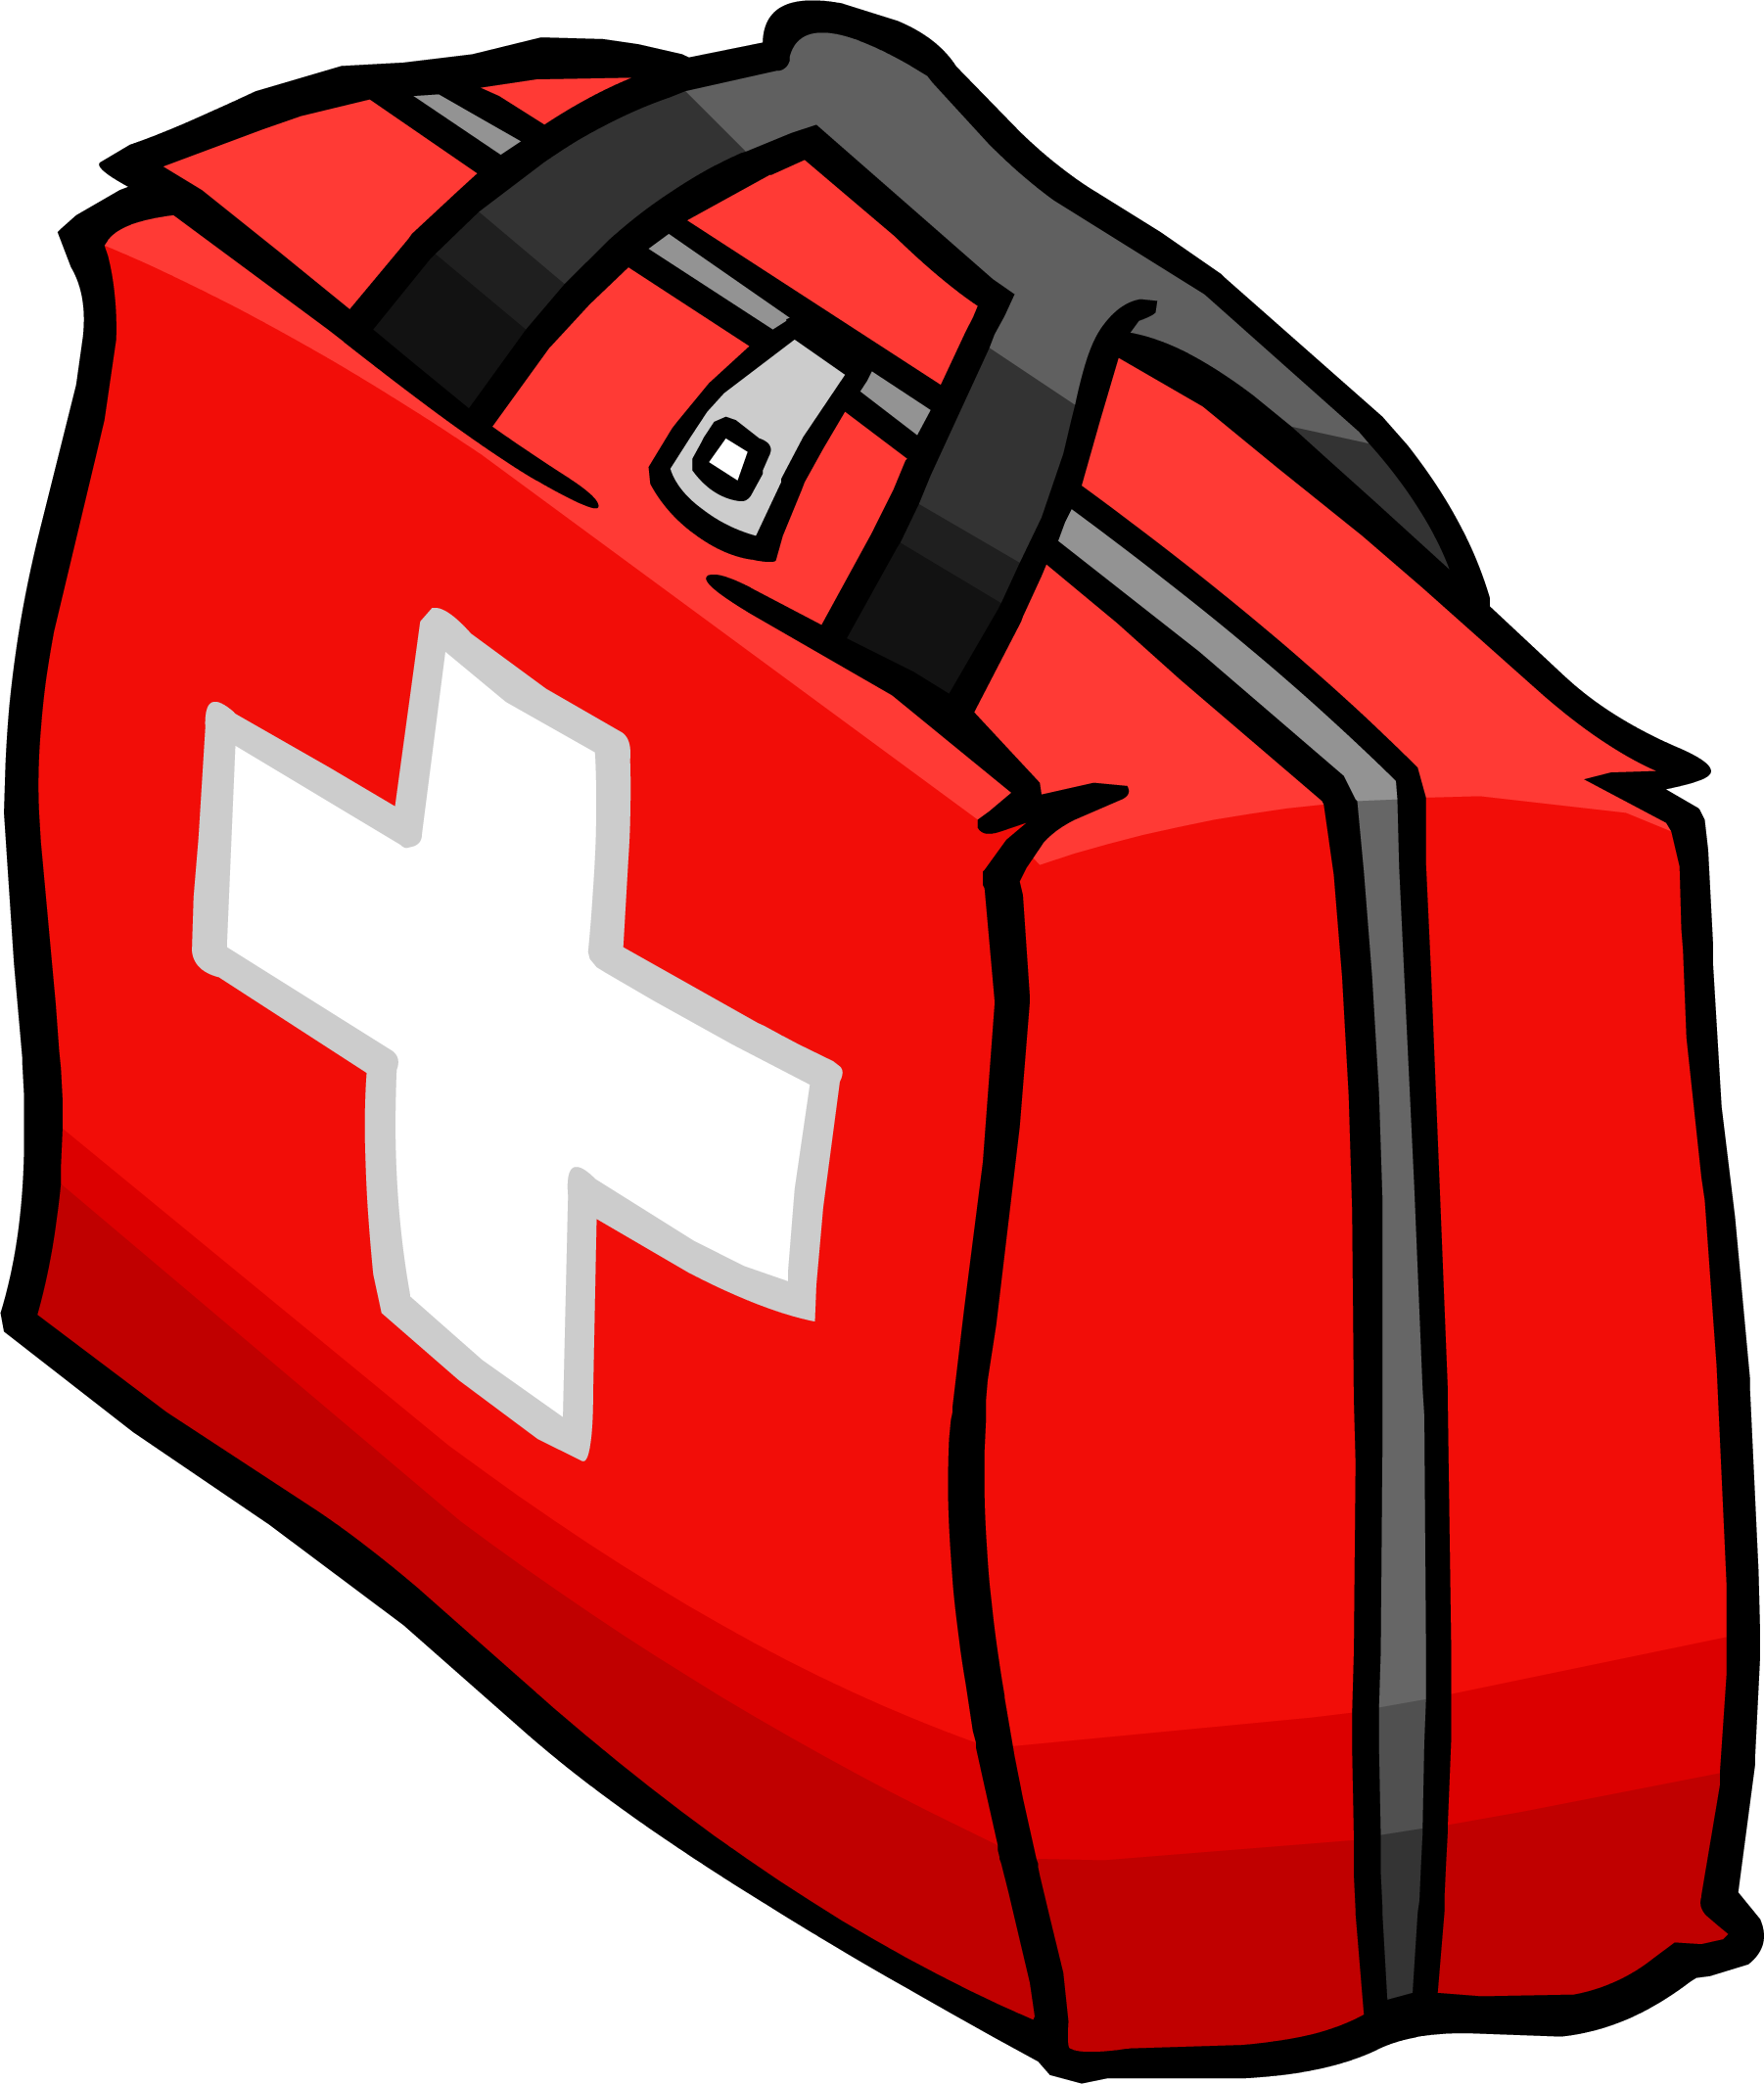 clip  collection of medical. First aid clipart classroom.